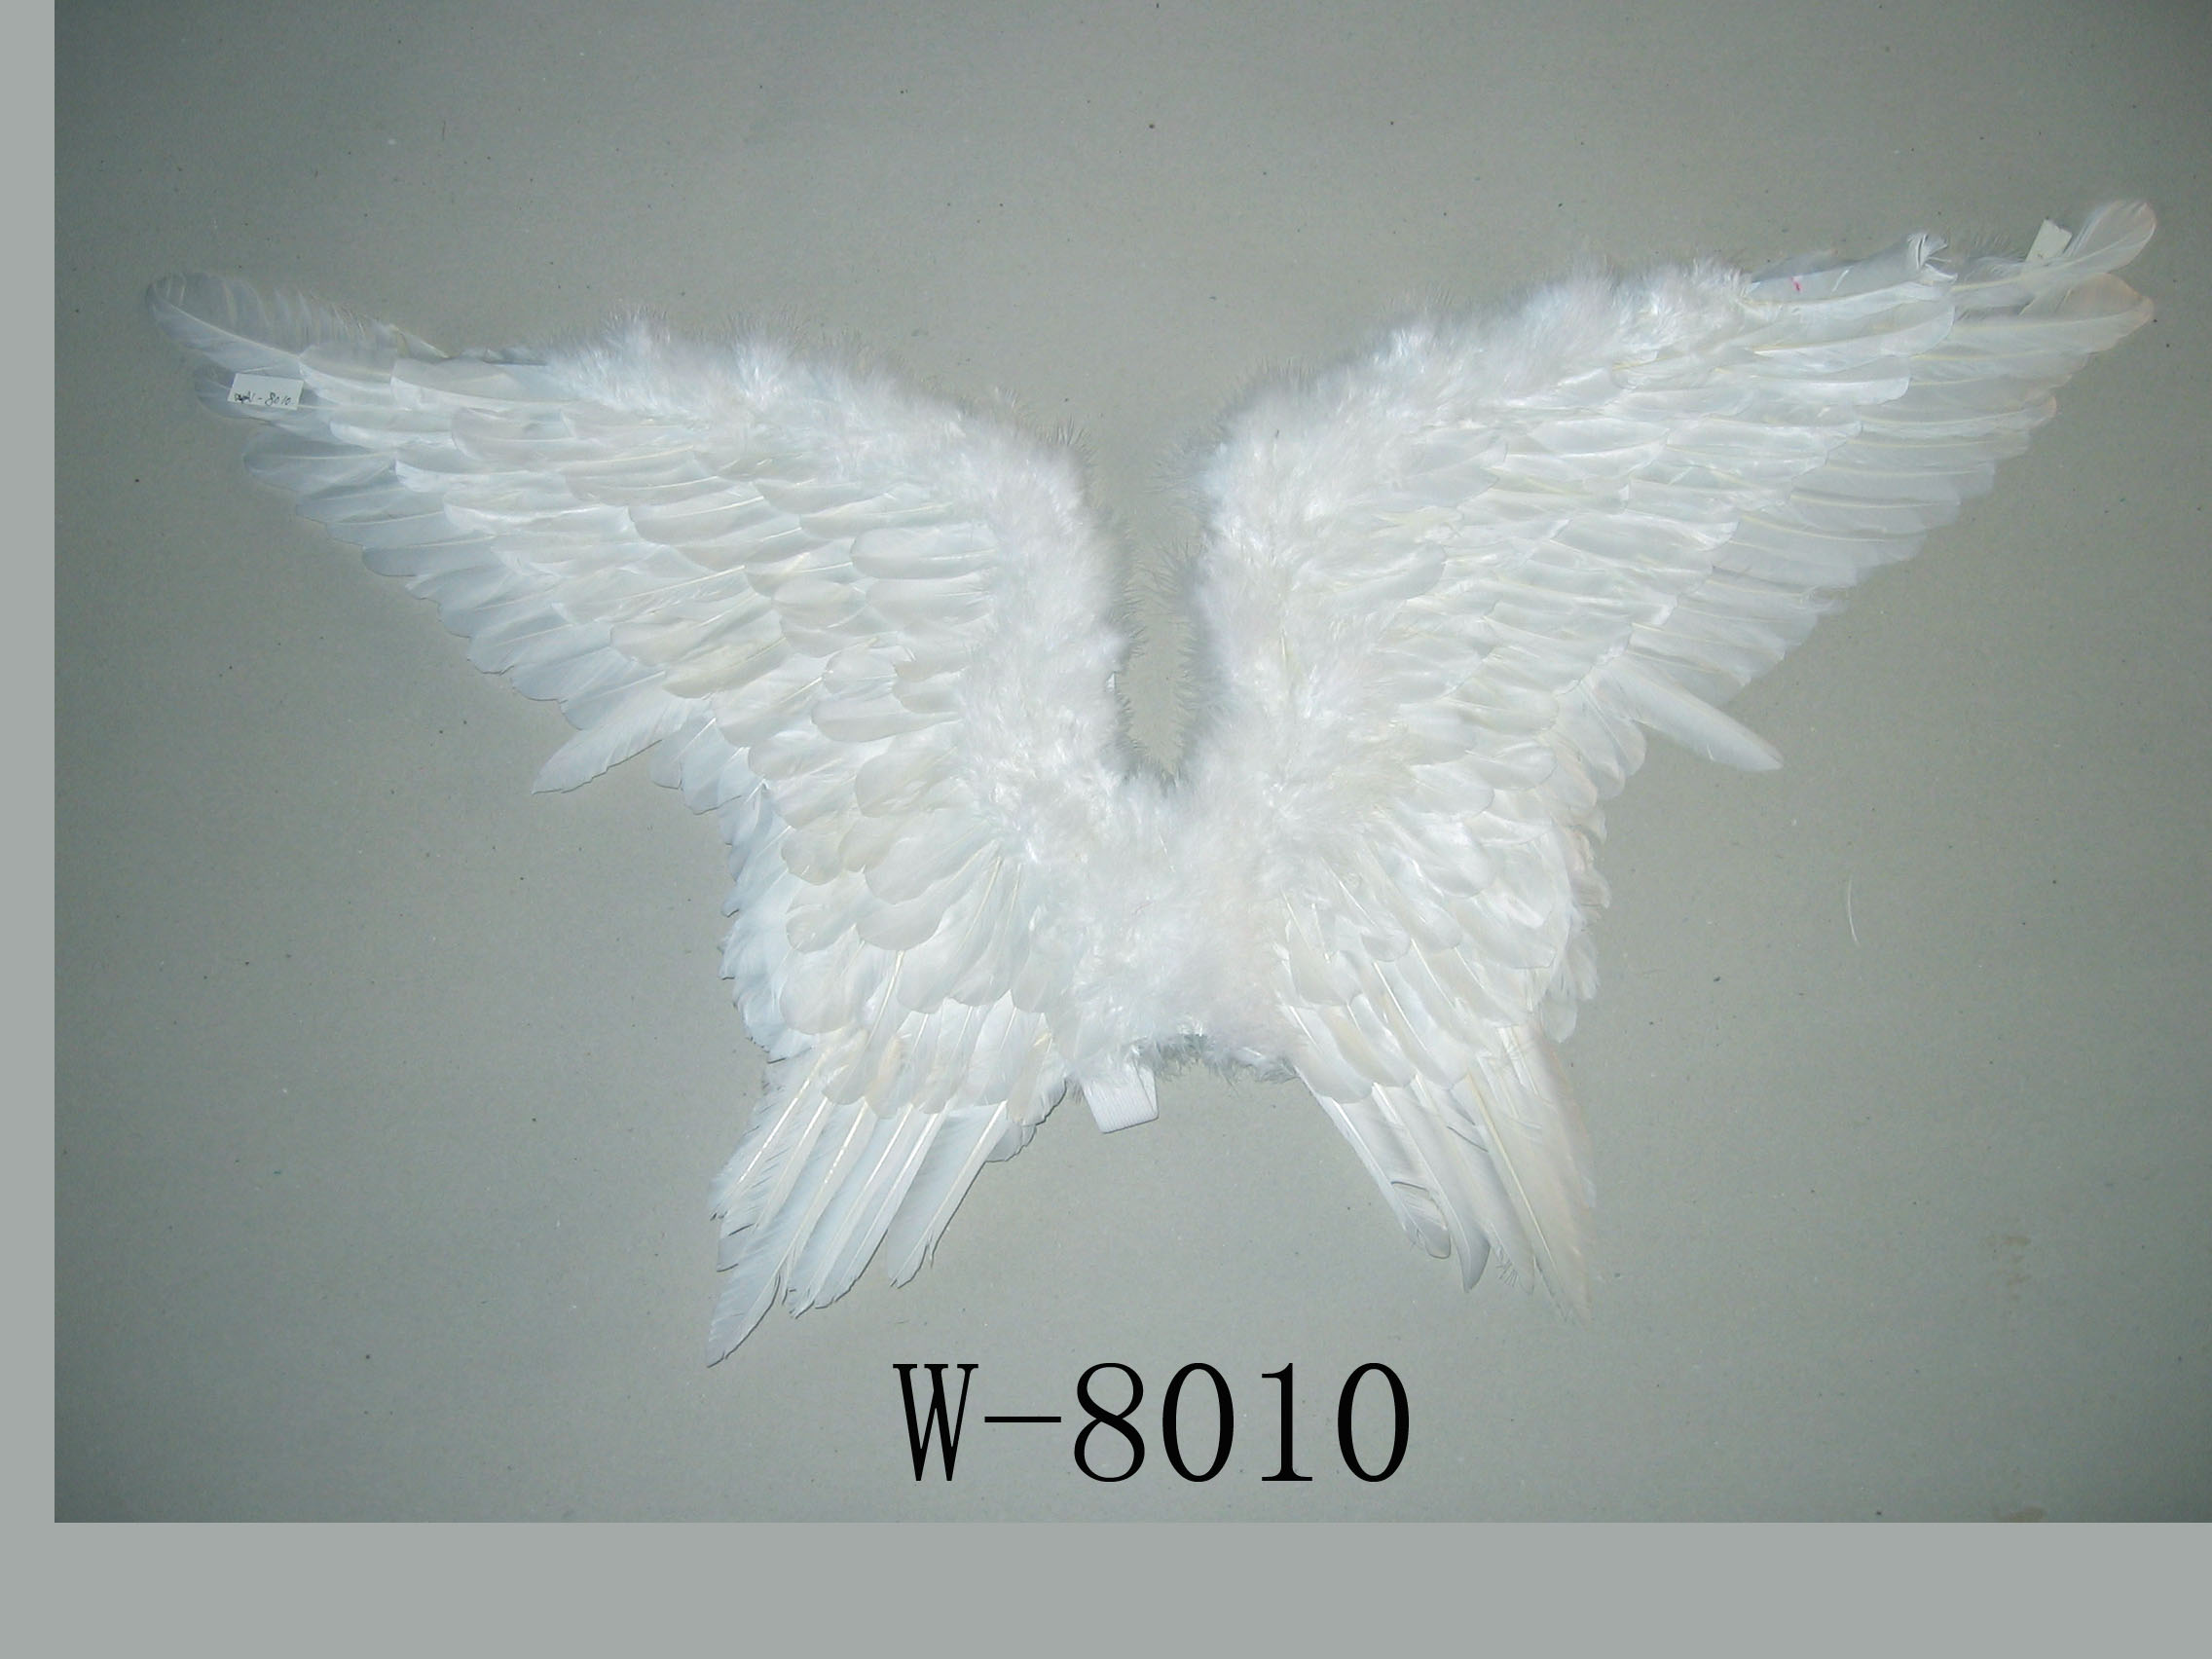 feather angel wings for sale - China supplier W-8010